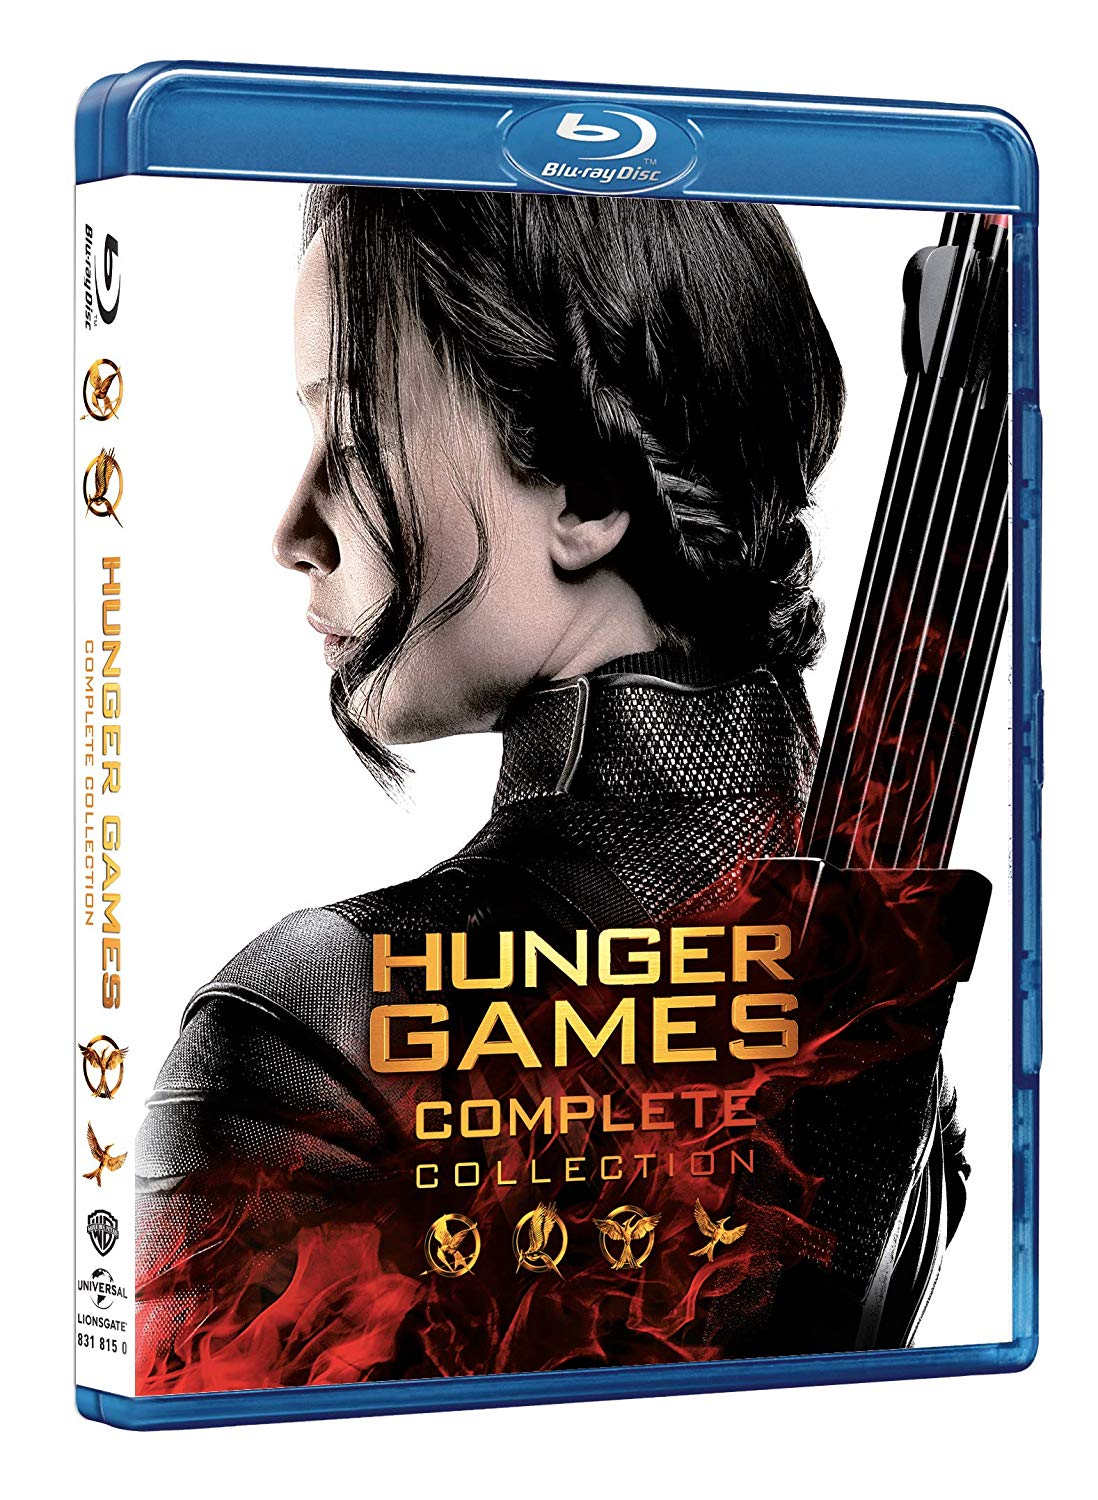 COF.HUNGER GAMES COLLECTION (4 BLU-RAY)